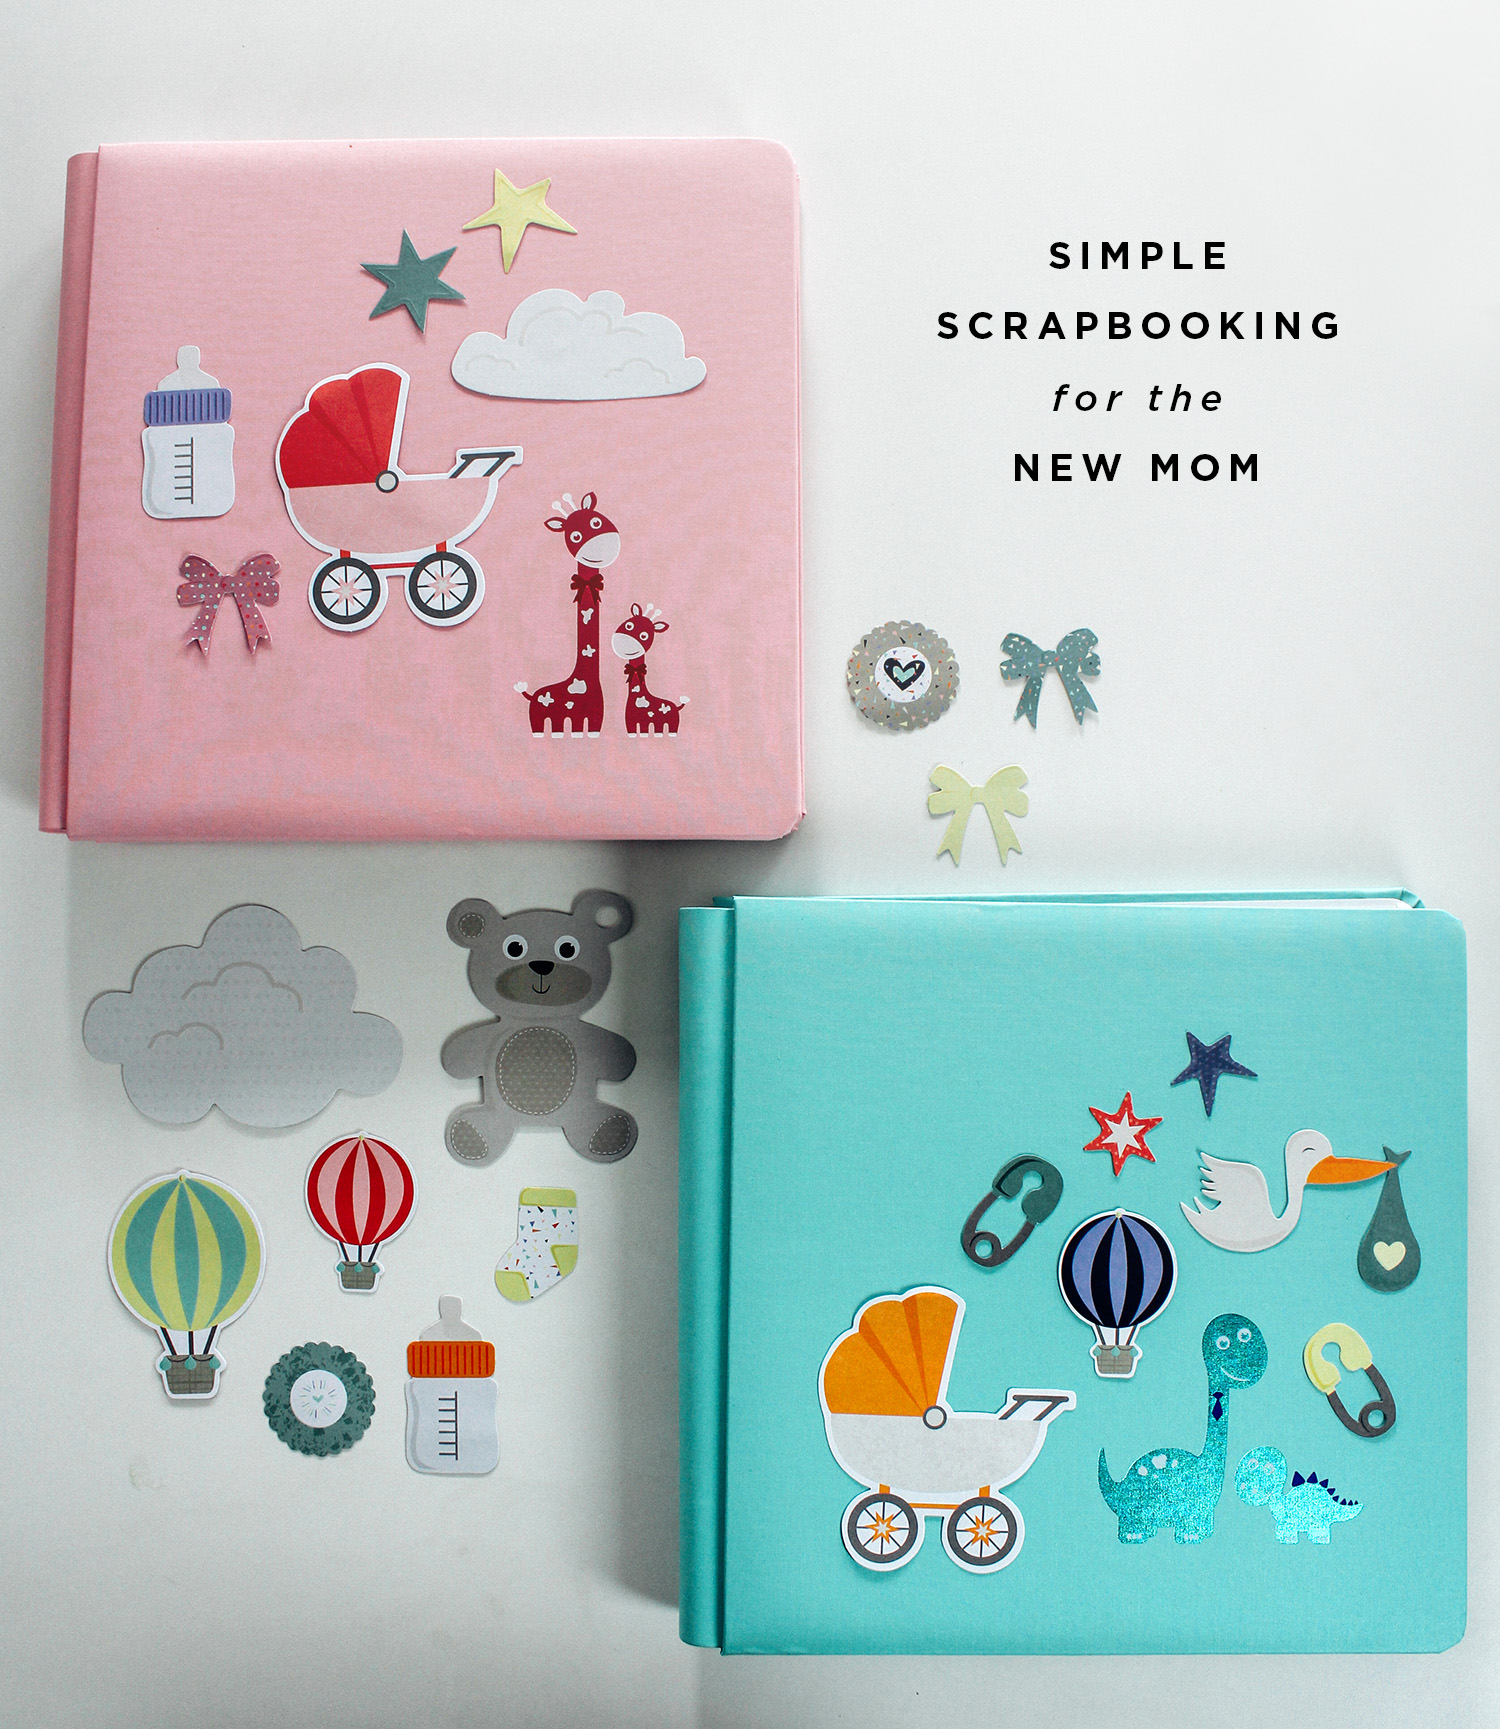 Simple Scrapbooking for the new mom